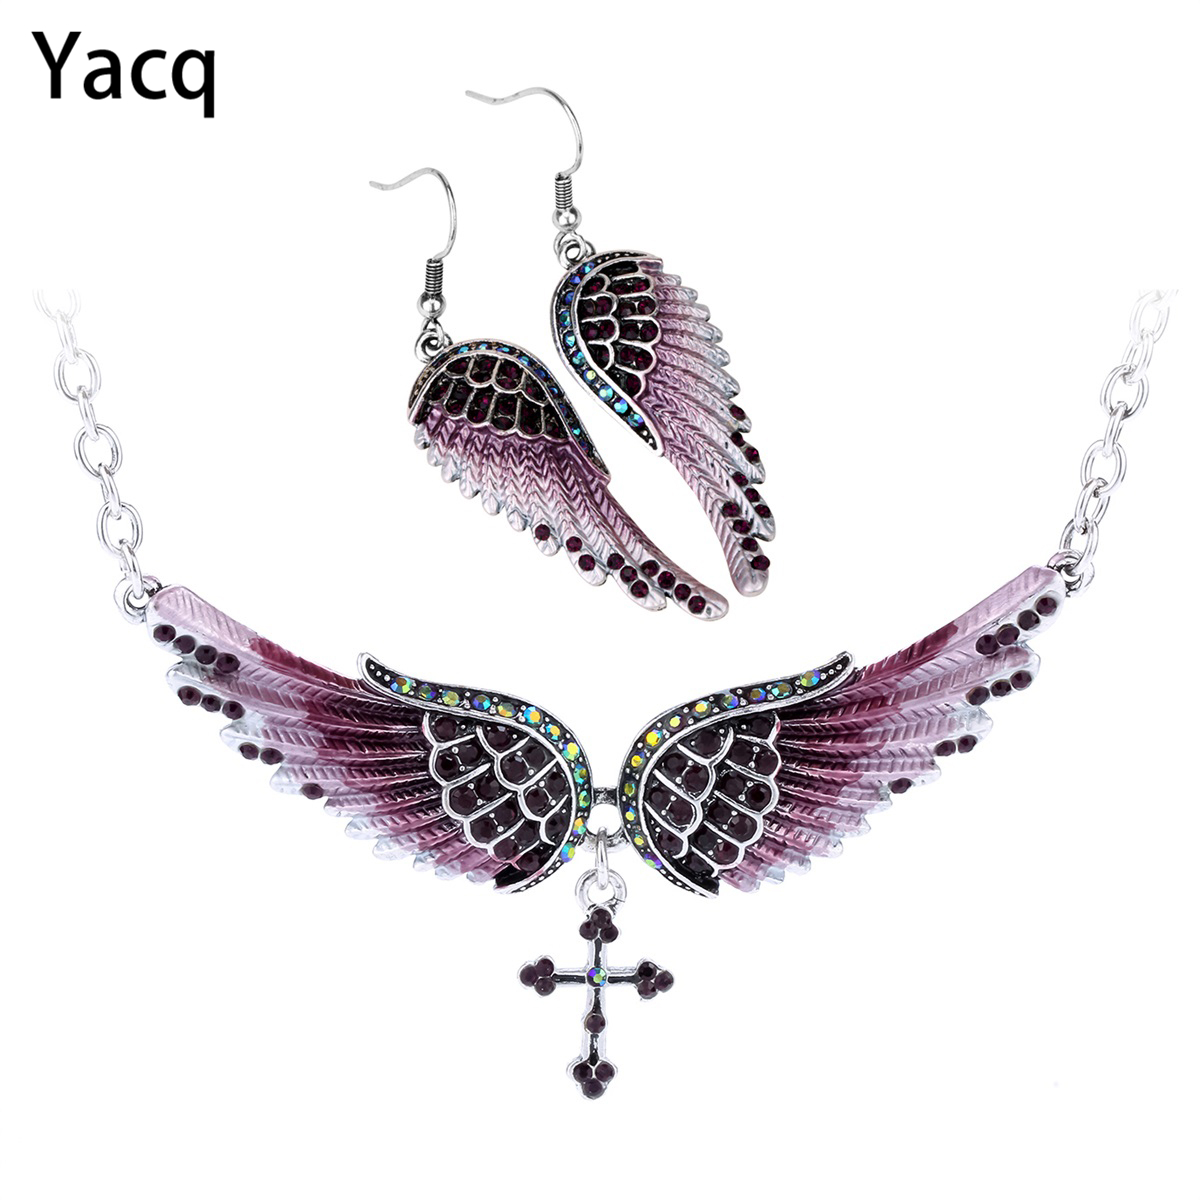 Yacq Angel Wing Cross Necklace Earrings Sets Women Biker Bling Jewelry Birthday Gifts For Her Wife Mom Girlfriend Dropshipping